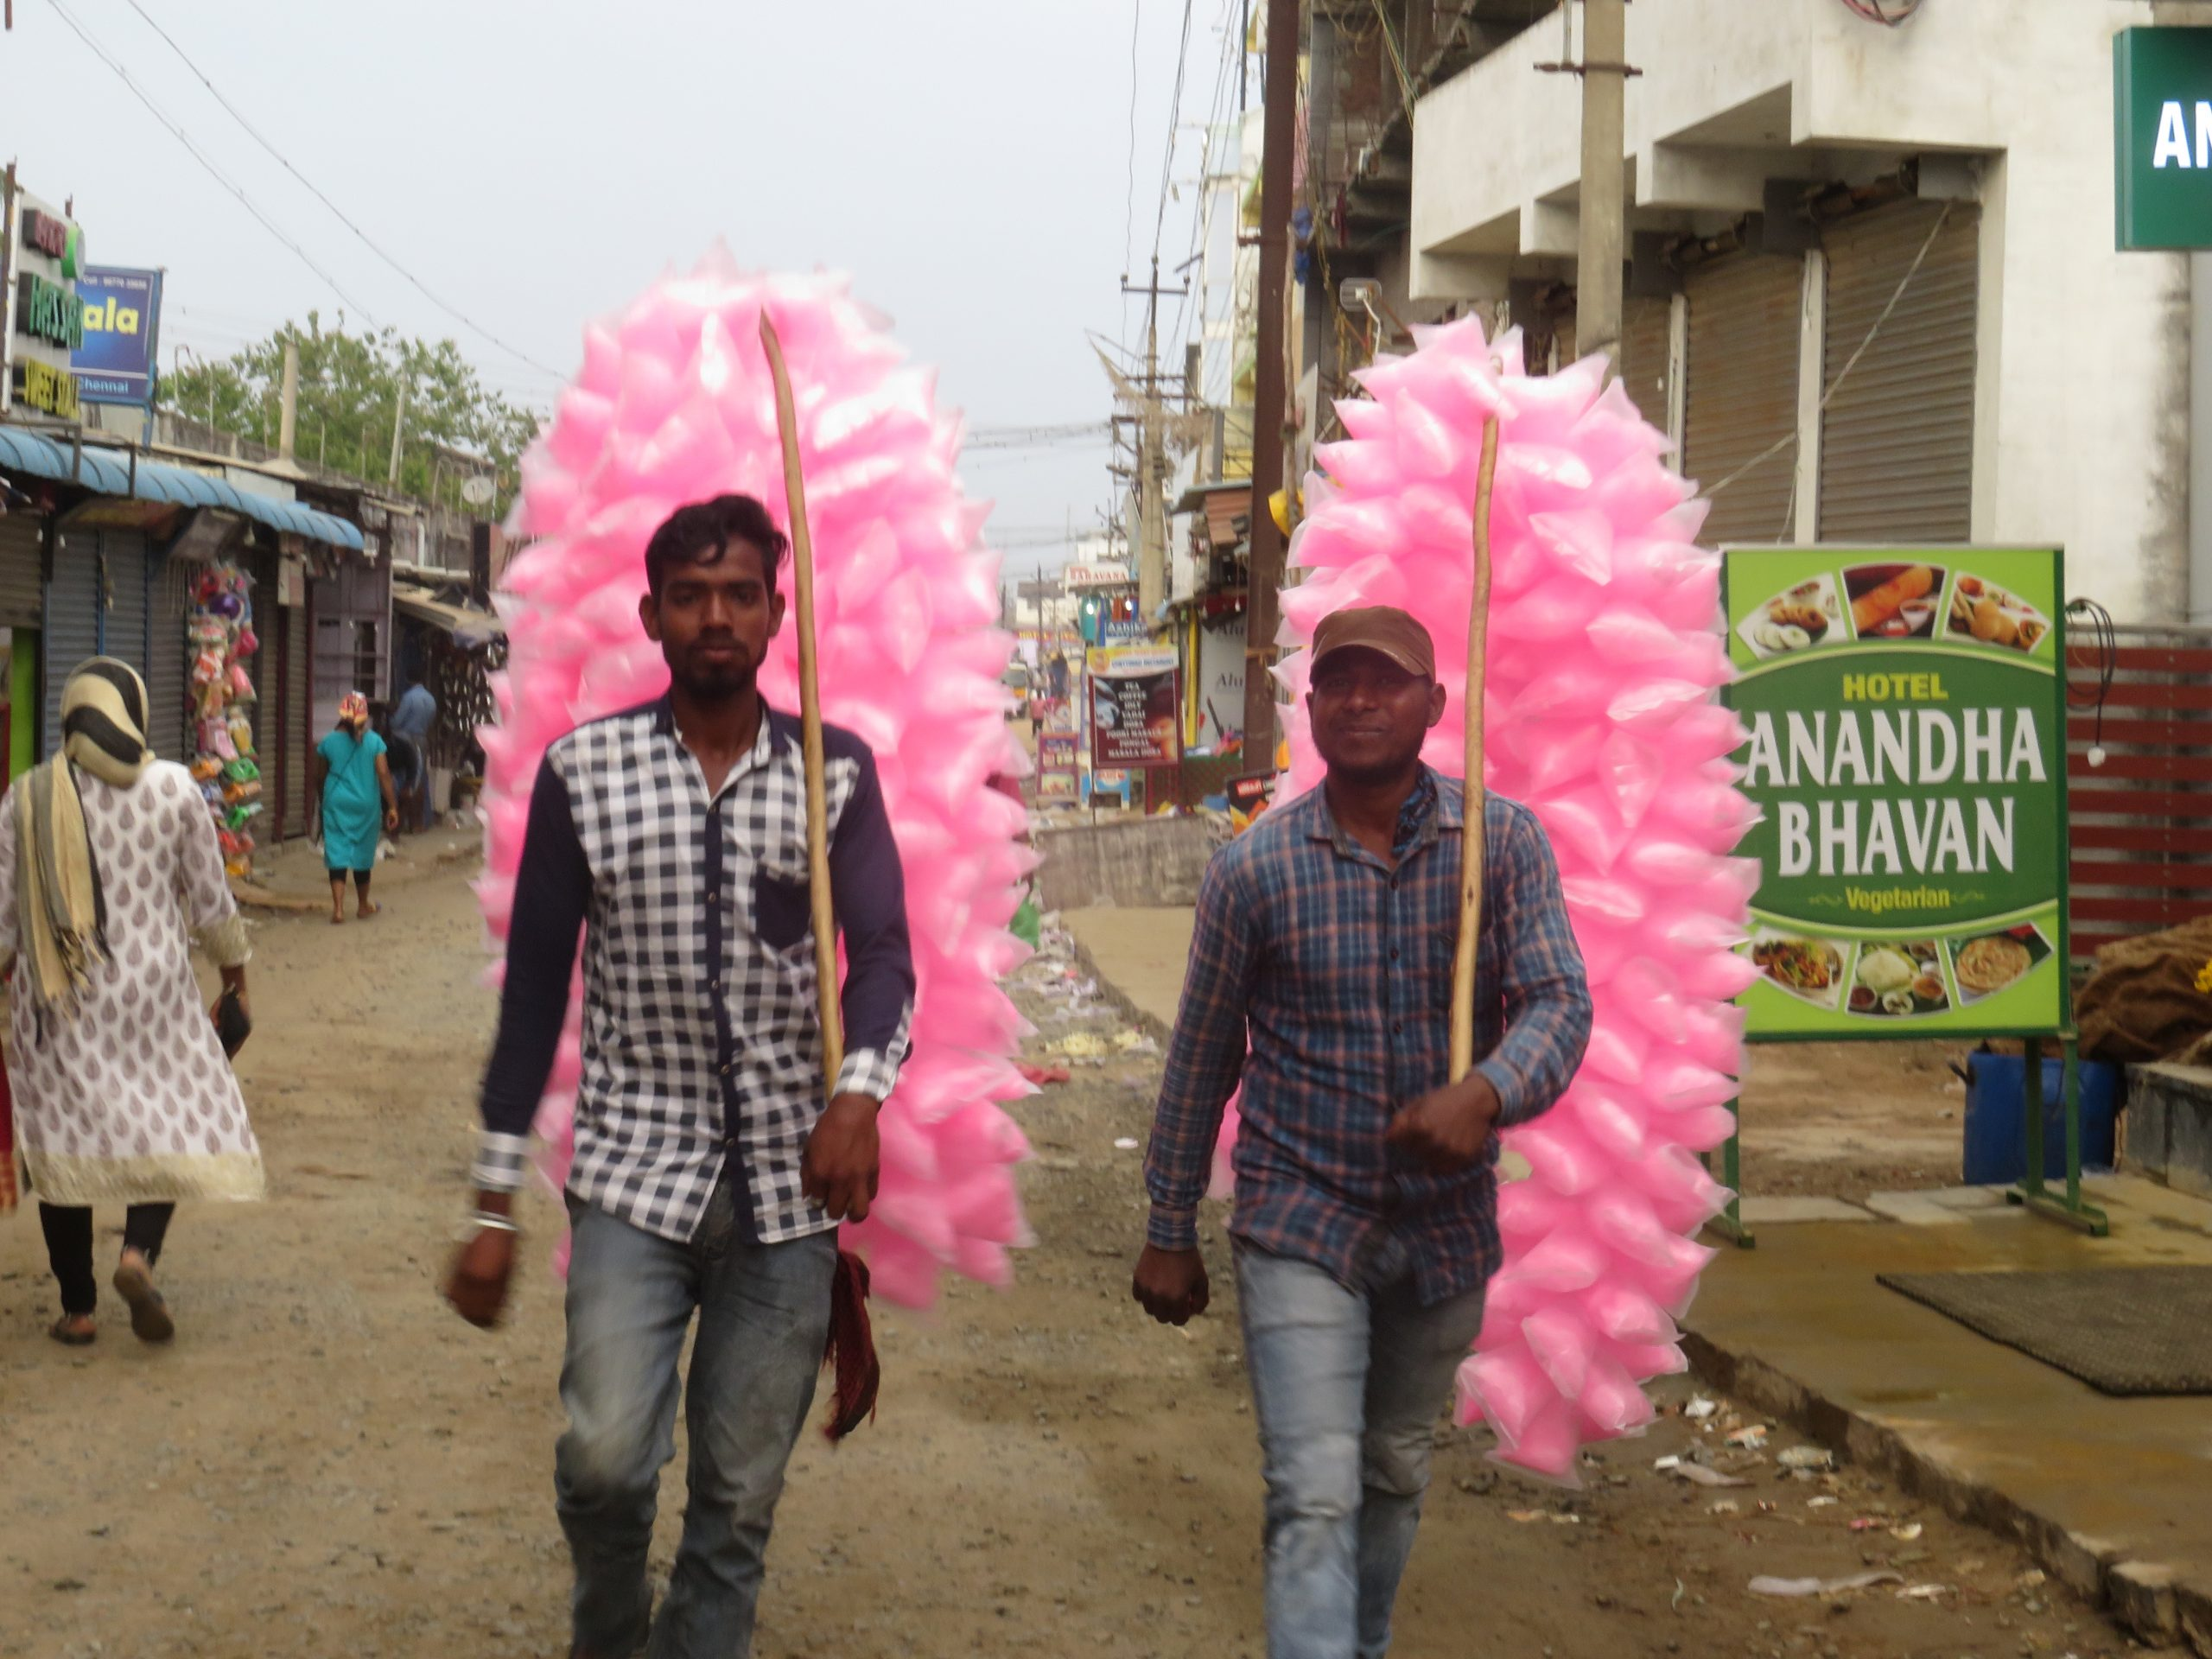 Candy floss Sellers